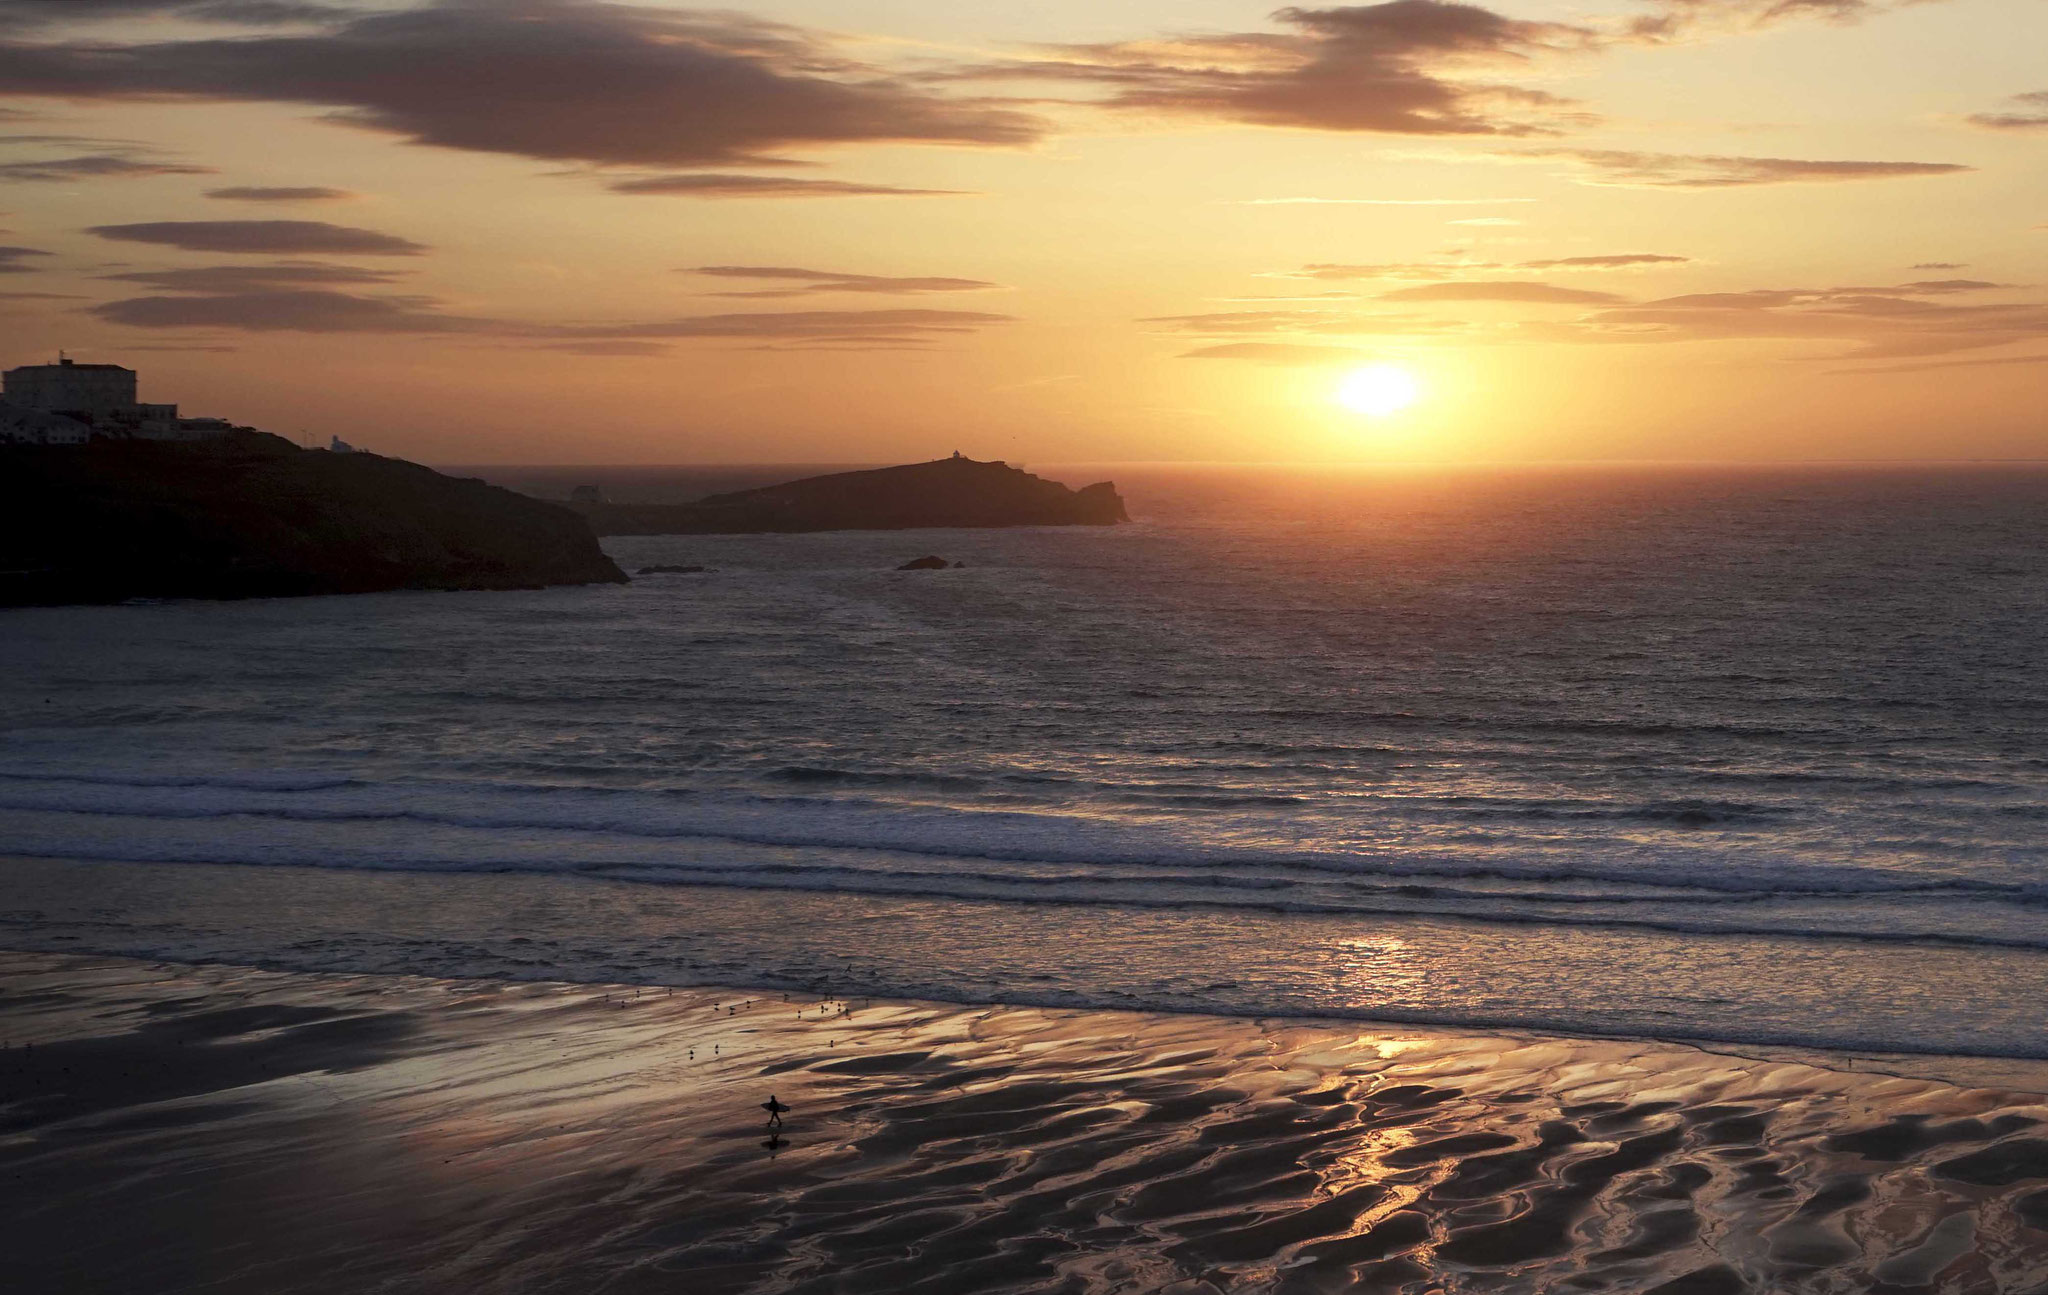 The sun setting in my home town of Newquay. First outing with my Sony A7. June 2016